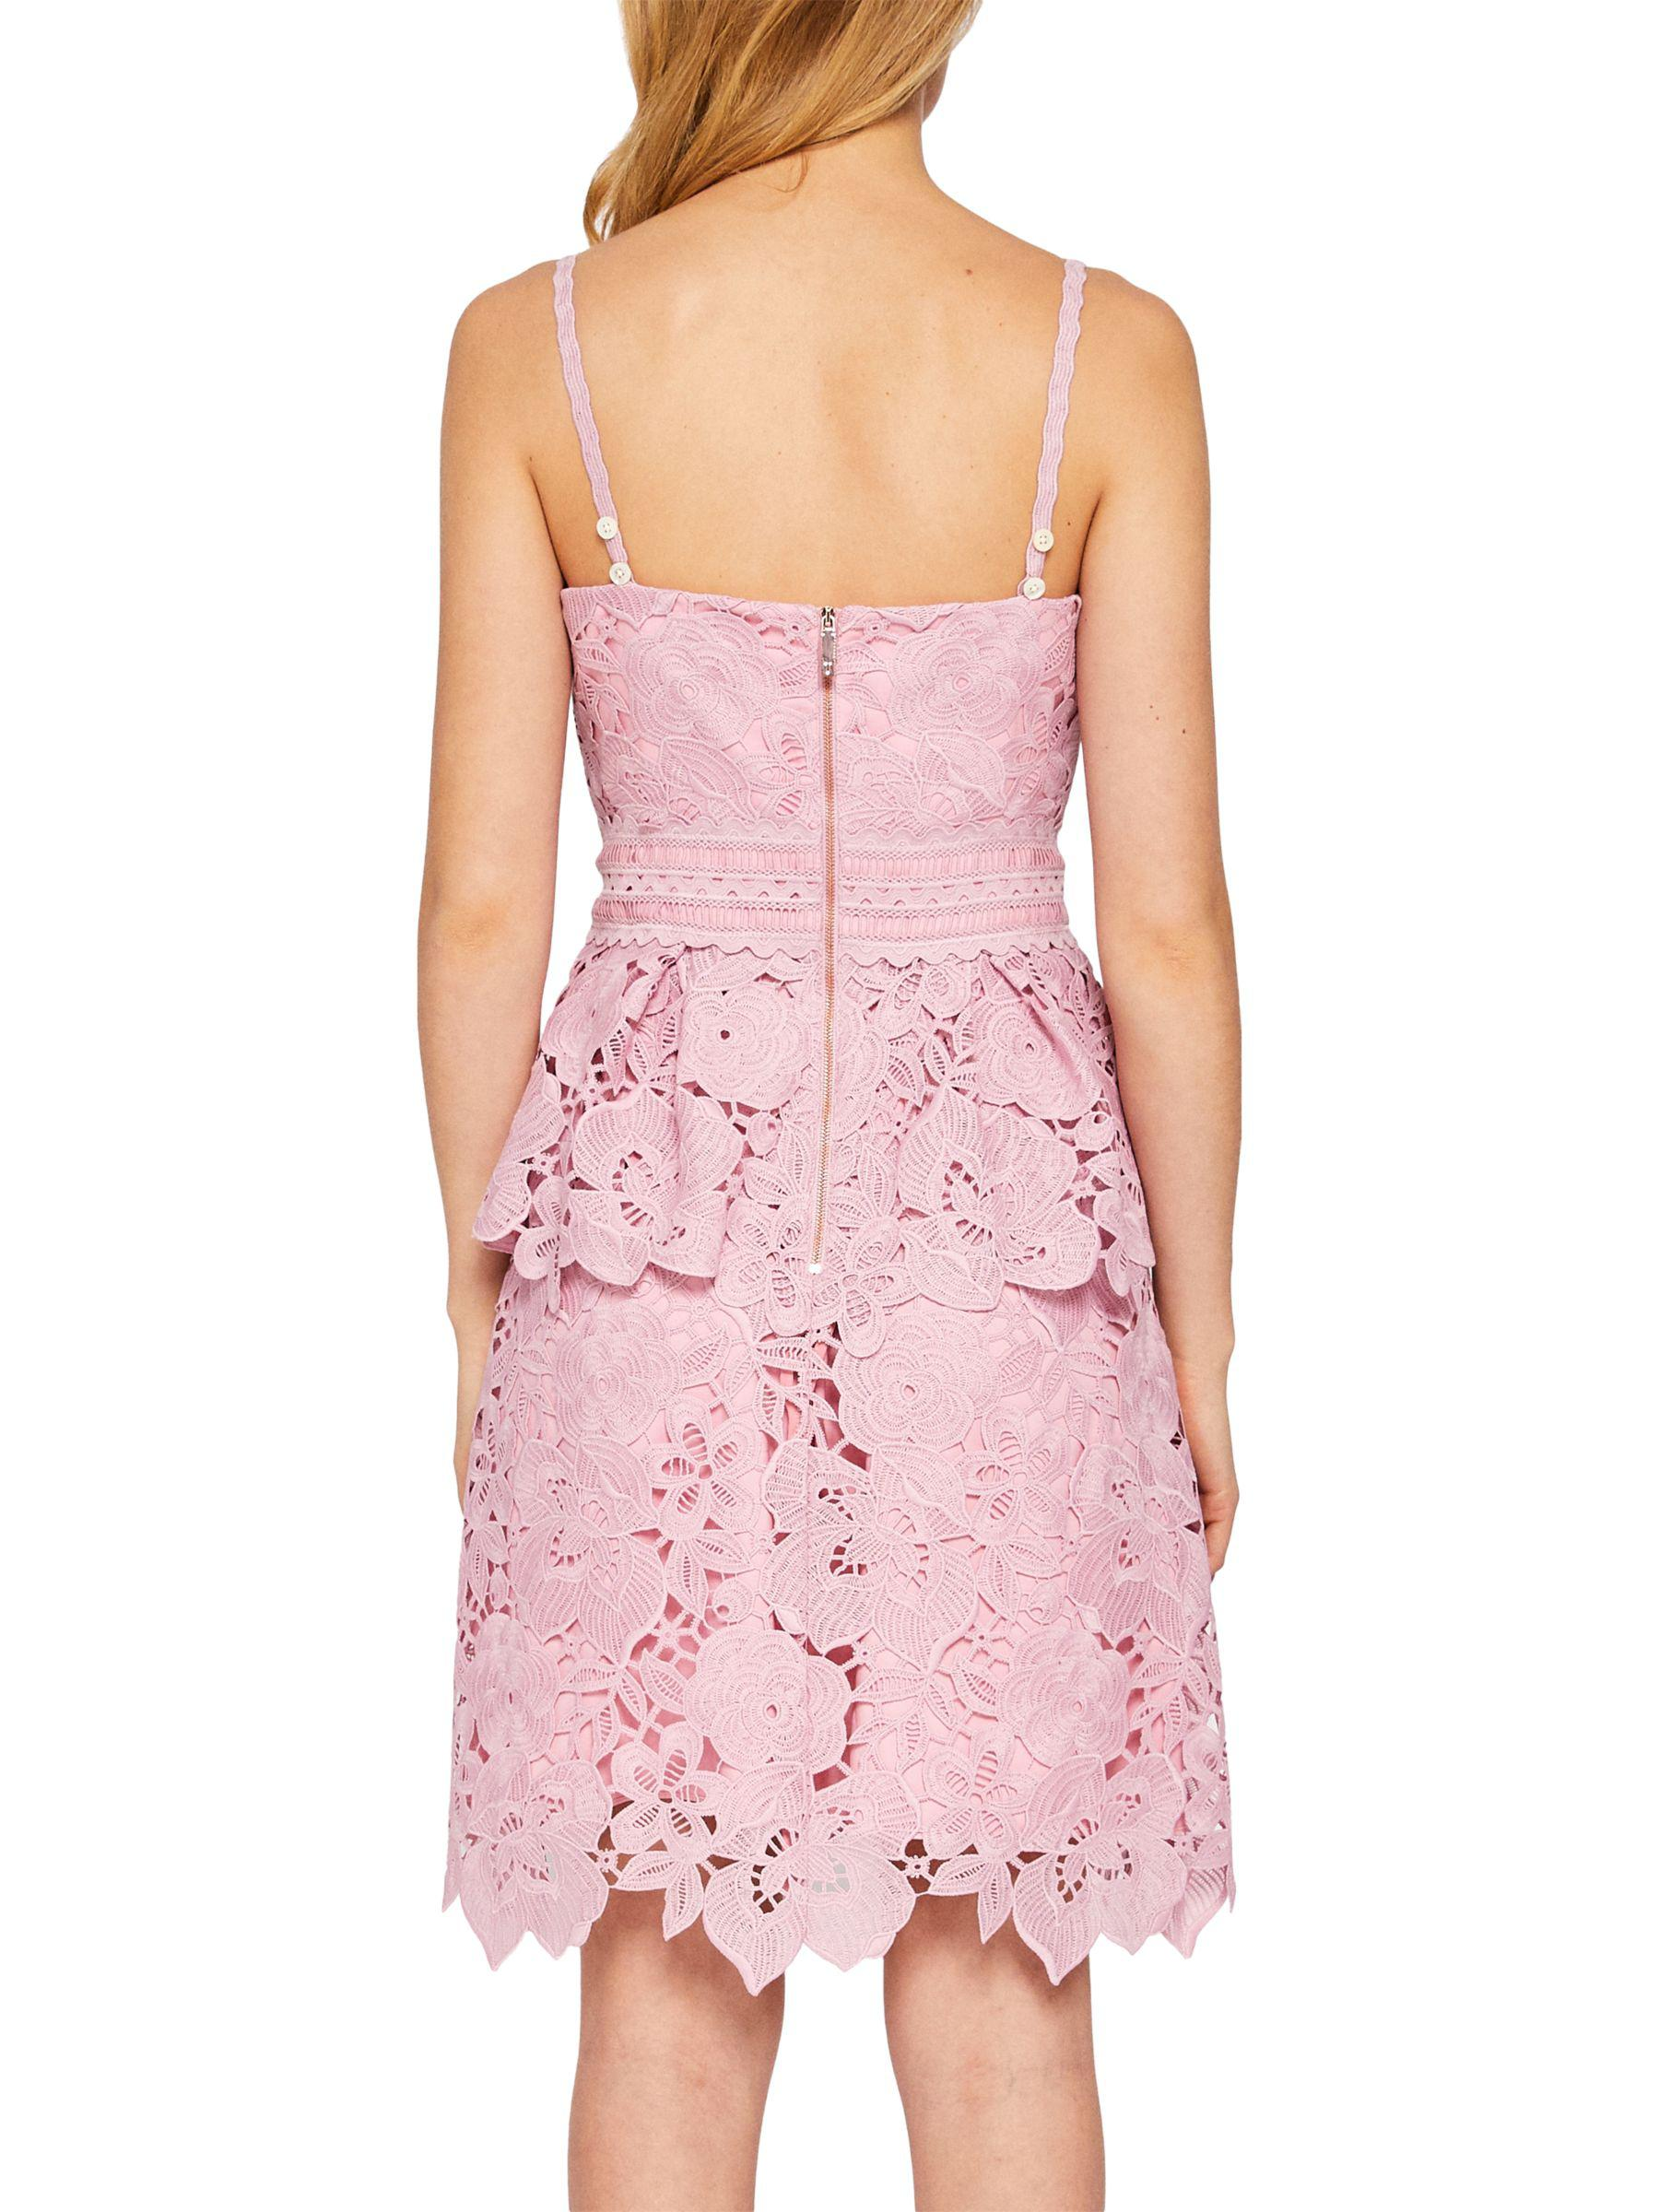 2ce1661e1b Ted Baker Nadiie Lace Peplum Dress in Pink - Save 40% - Lyst